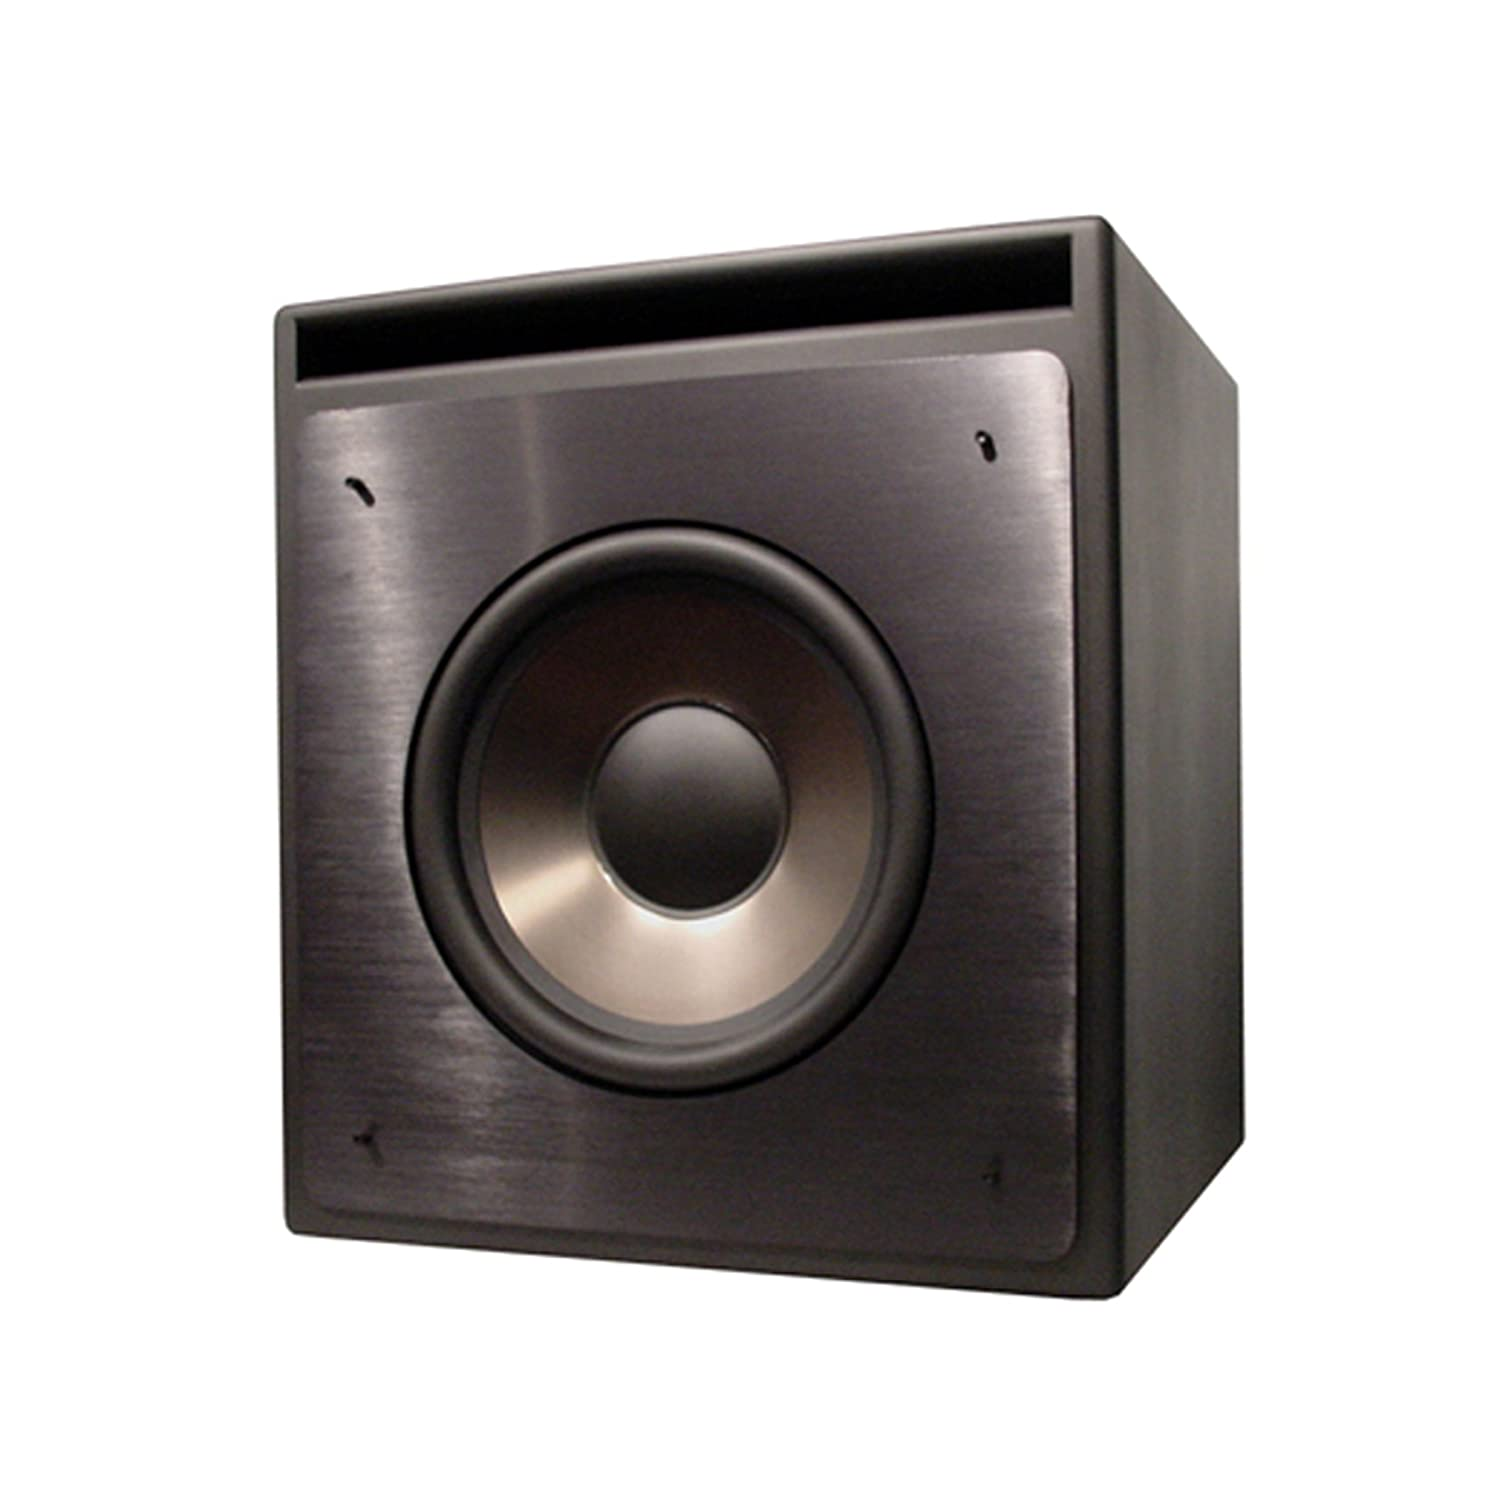 caterpillar shoes kw-120-thx subwoofers and amps